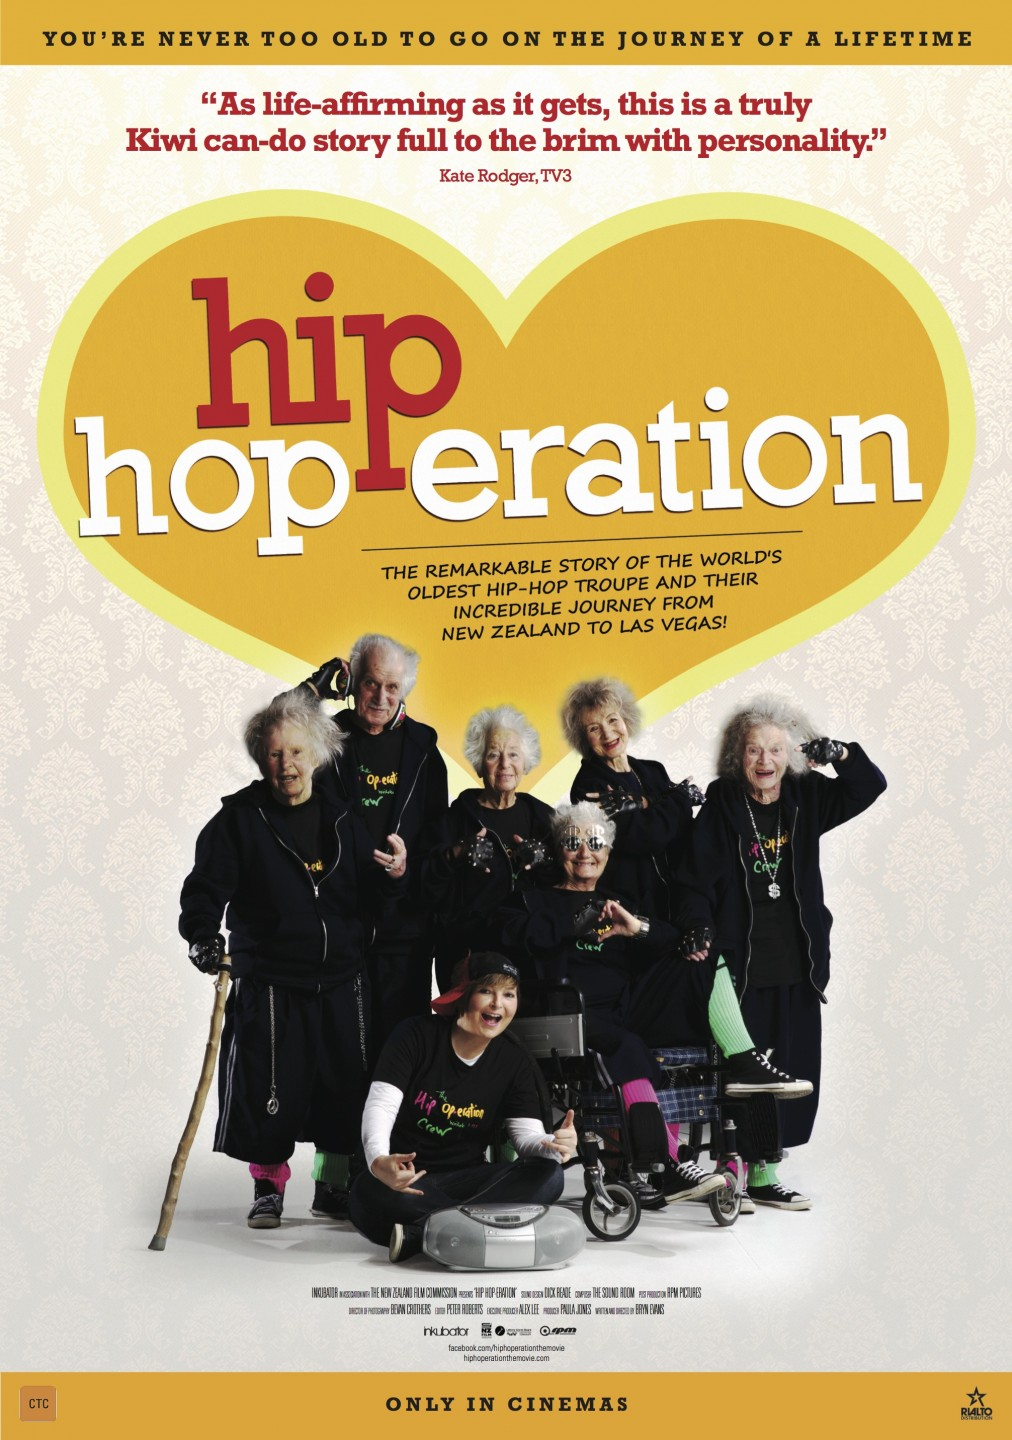 Hip_Hop-eration_juliste